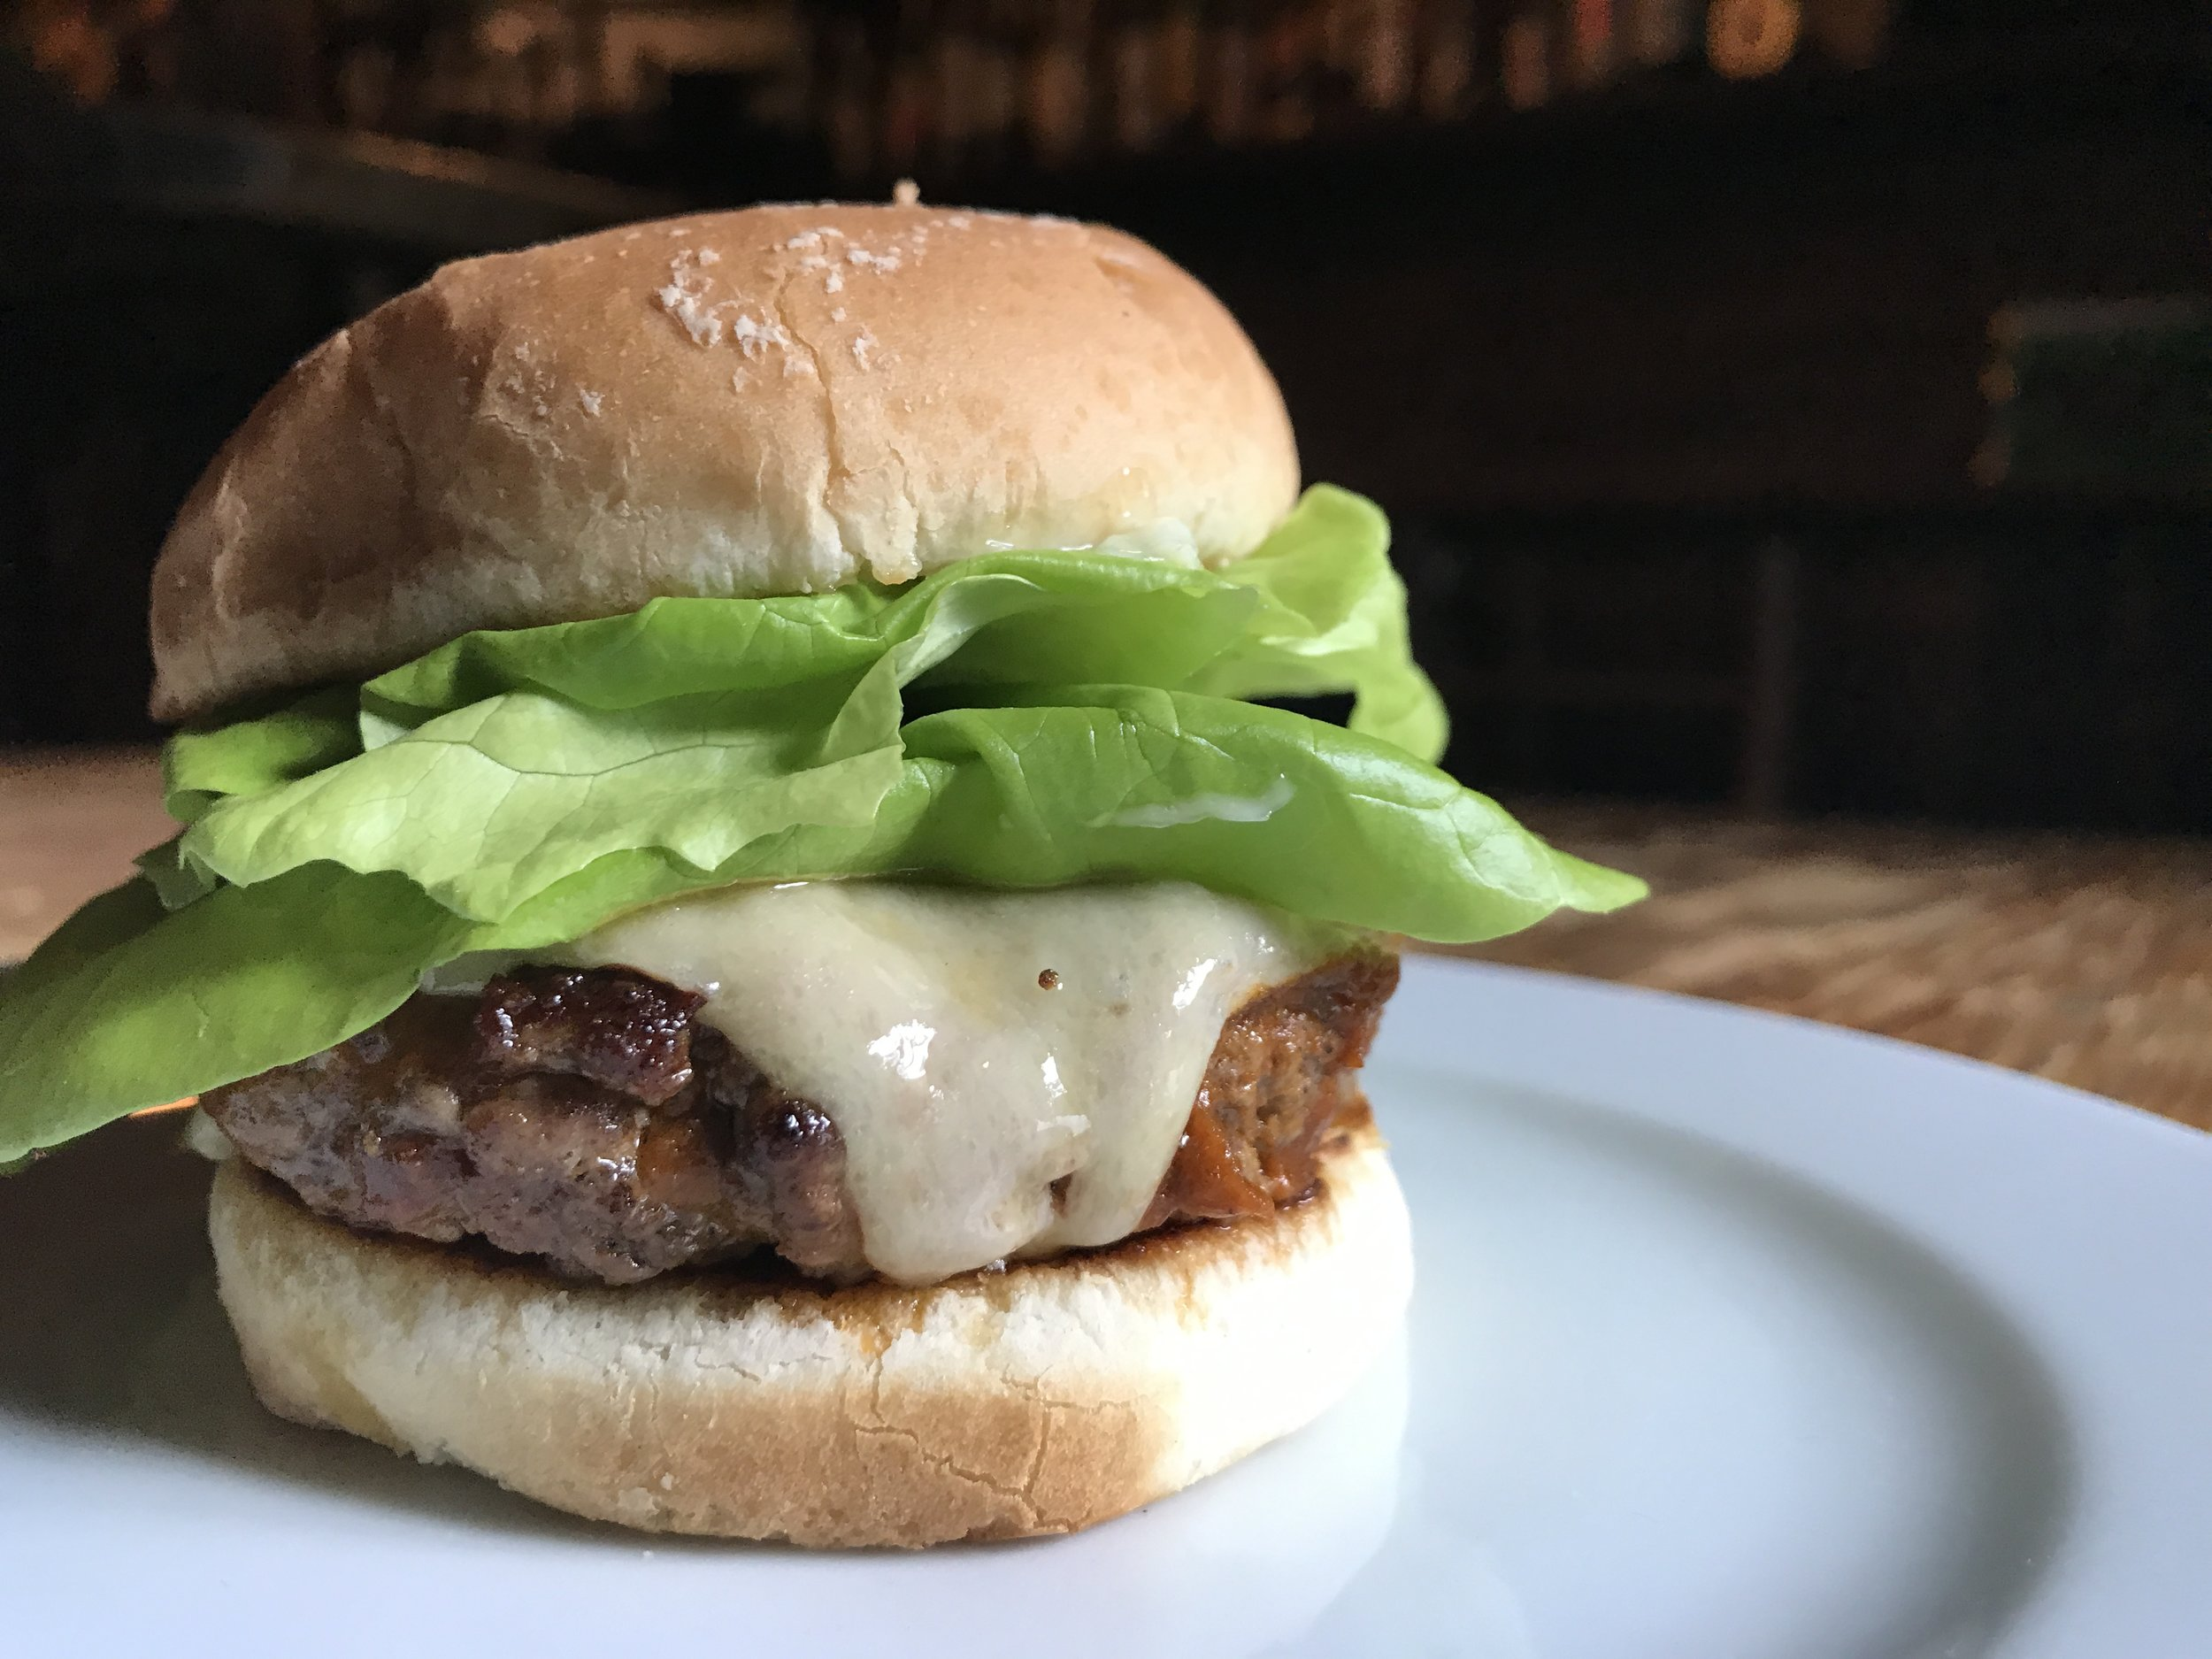 Singing You to Shipwreck: The C&O Burger